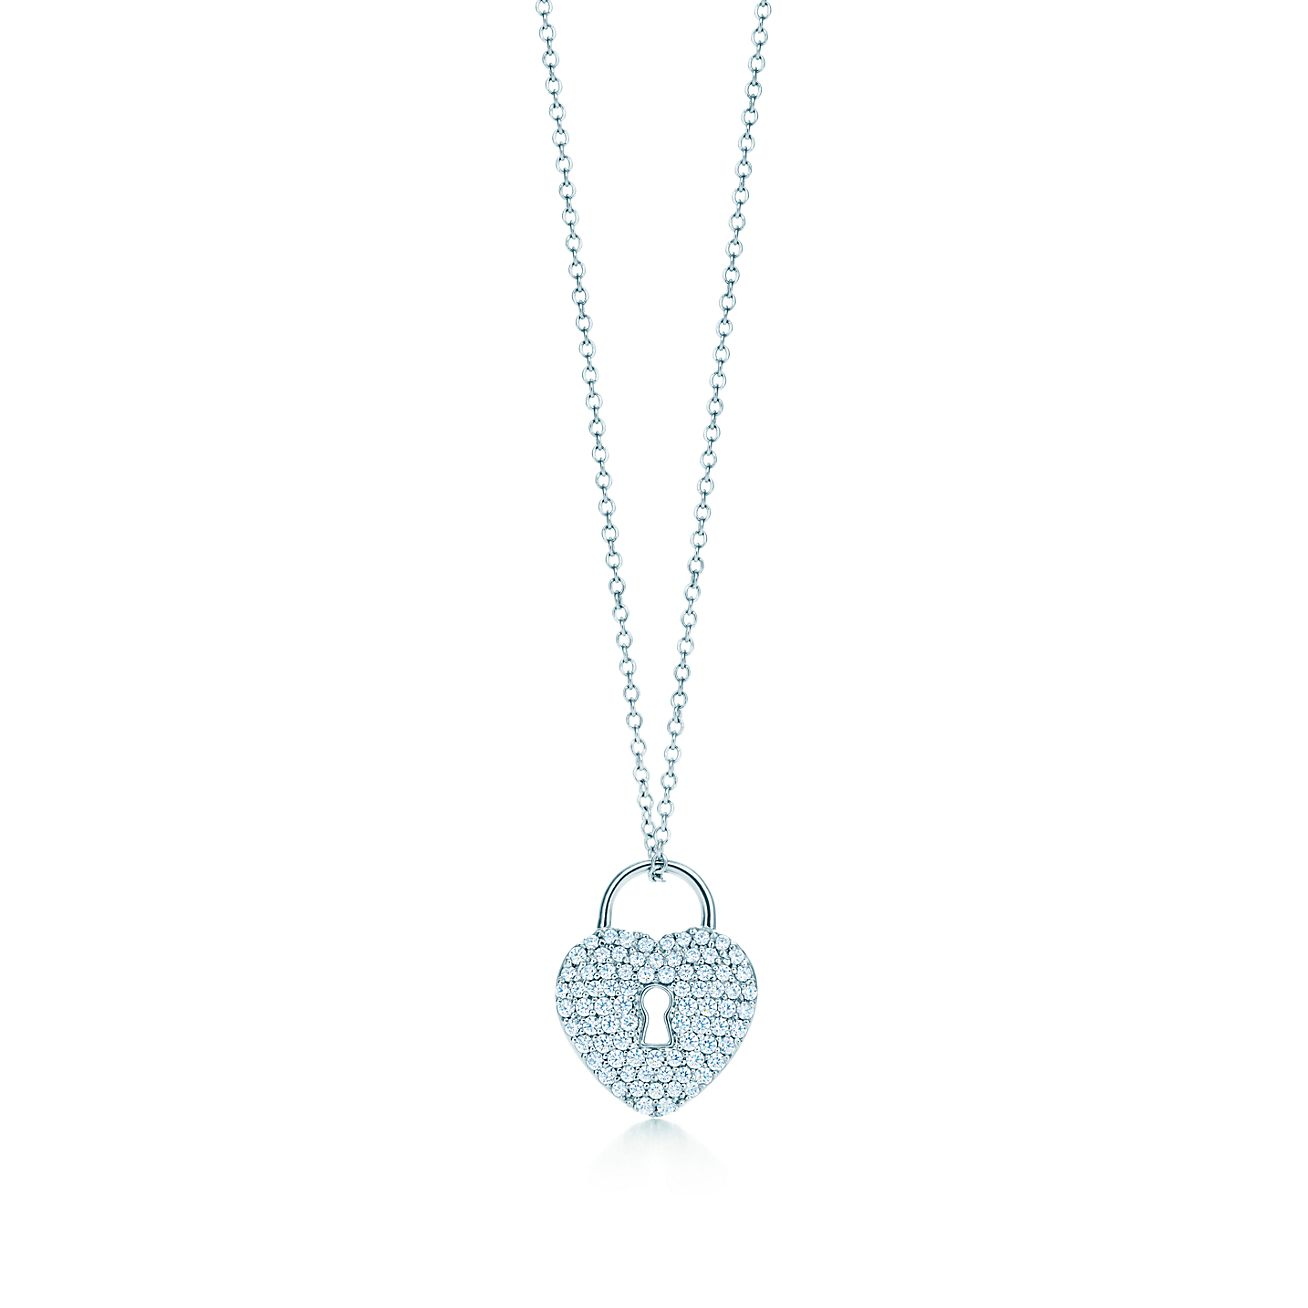 this co pendant and product lock pin tiffany necklaces category features jewelry